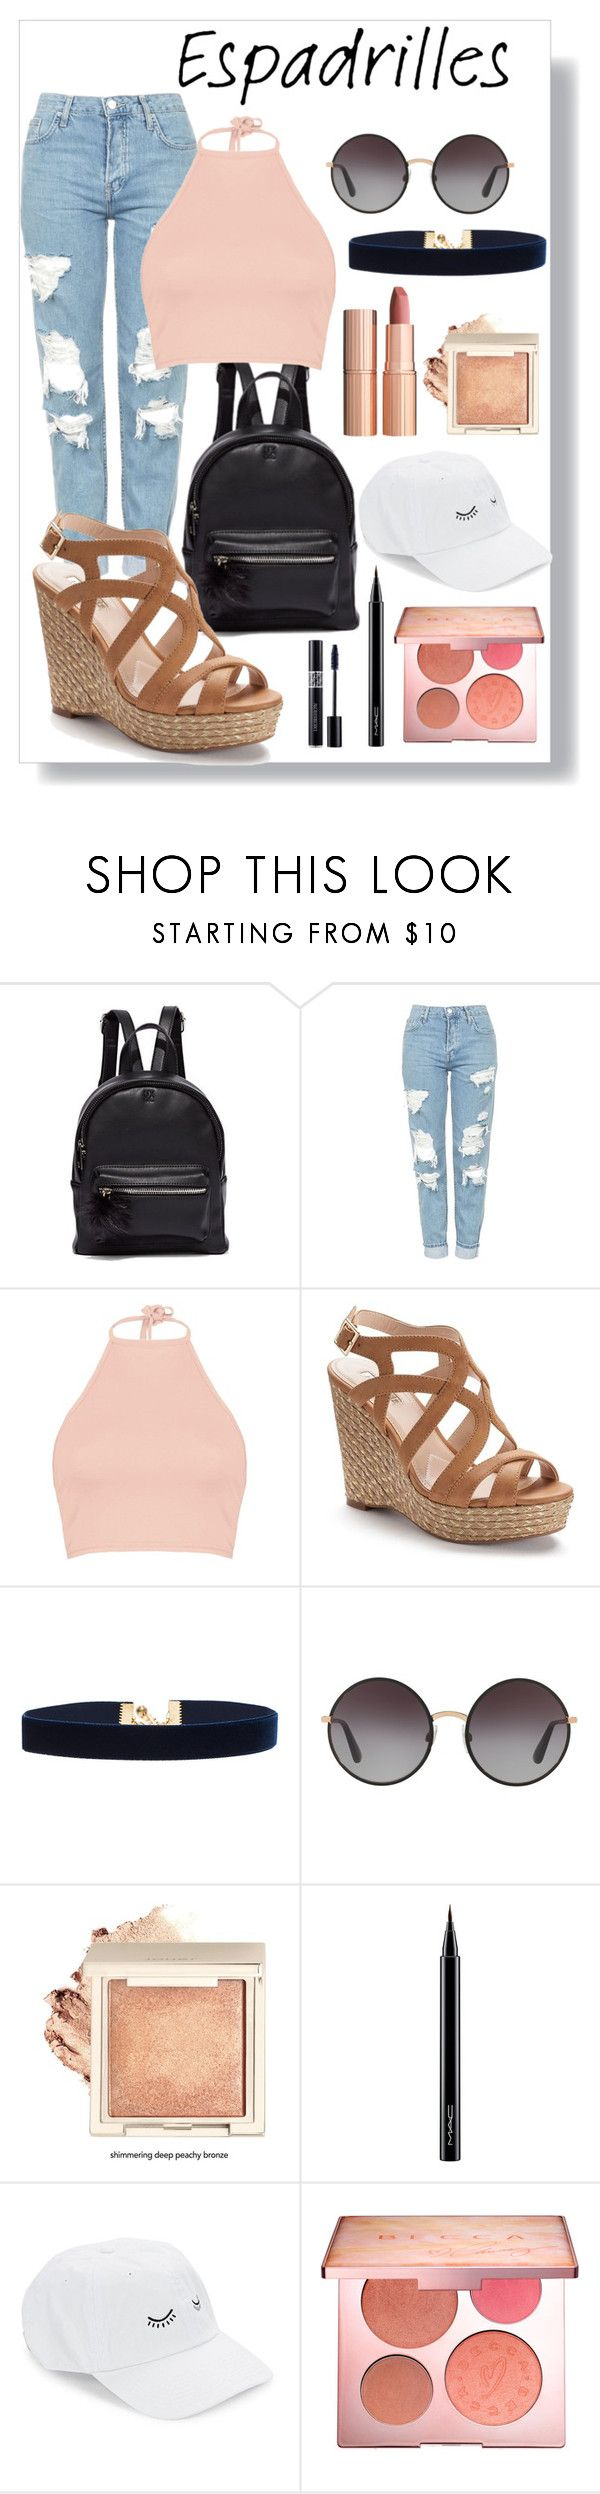 """""""Espadrilles"""" by glitter36 ❤ liked on Polyvore featuring New York & Company, Topshop, Boohoo, Jennifer Lopez, Vanessa Mooney, Dolce&Gabbana, Charlotte Tilbury, MAC Cosmetics, Body Rags and Sephora Collection"""